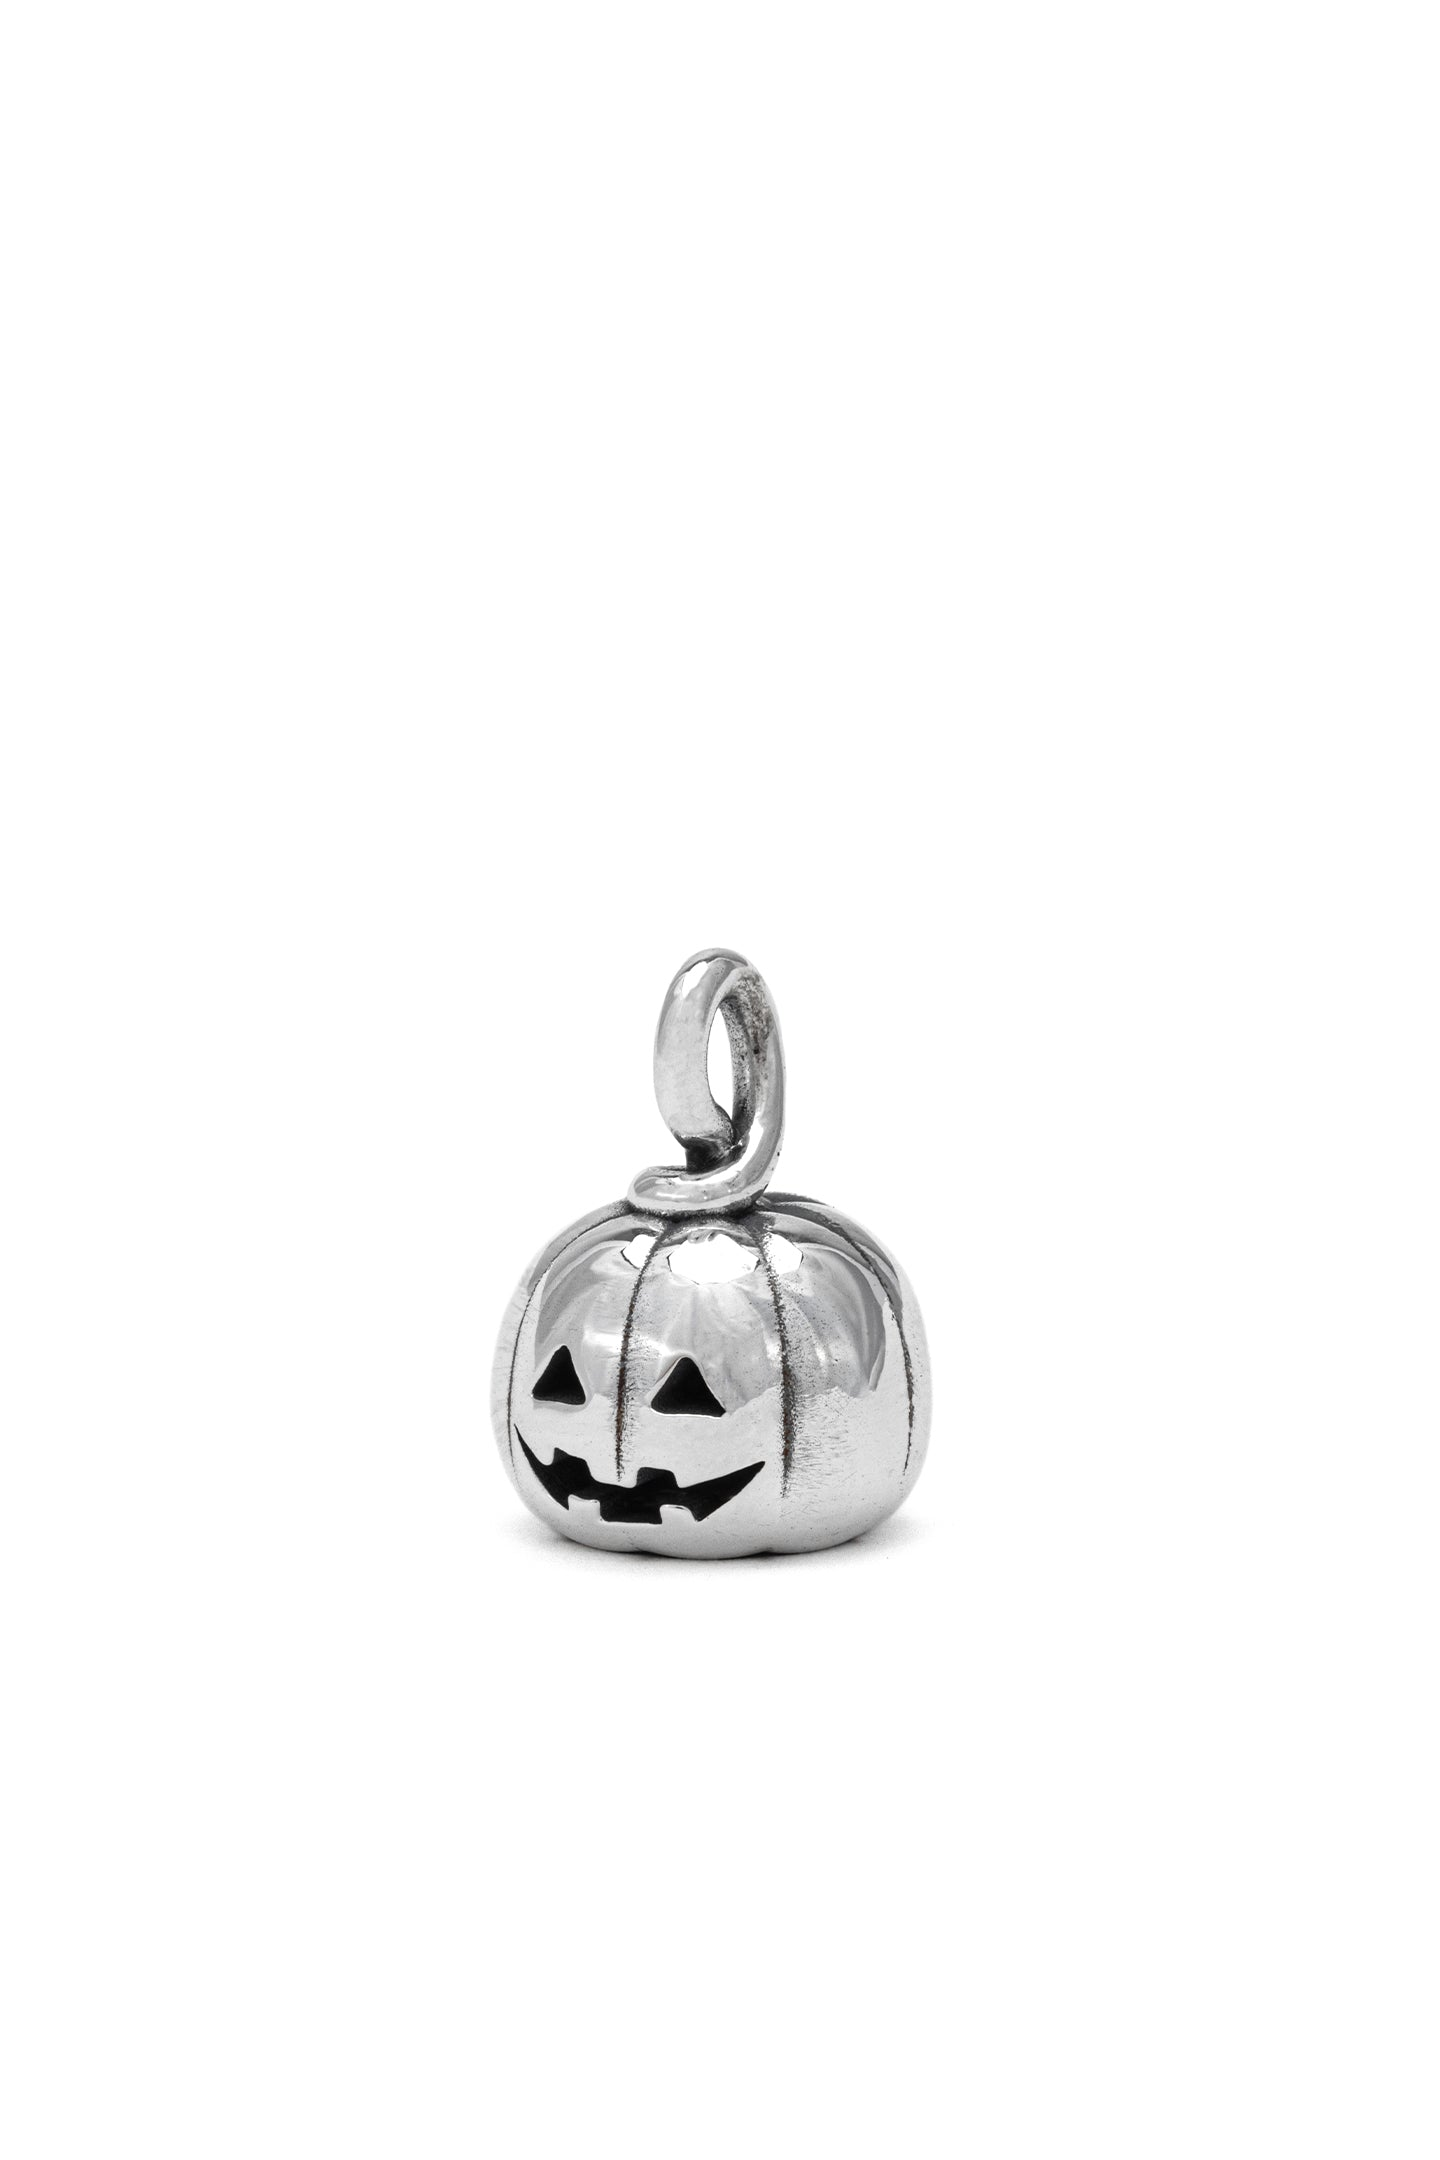 Goodfight x Good Art Hlywd Sterling Silver Pumpkin Charm